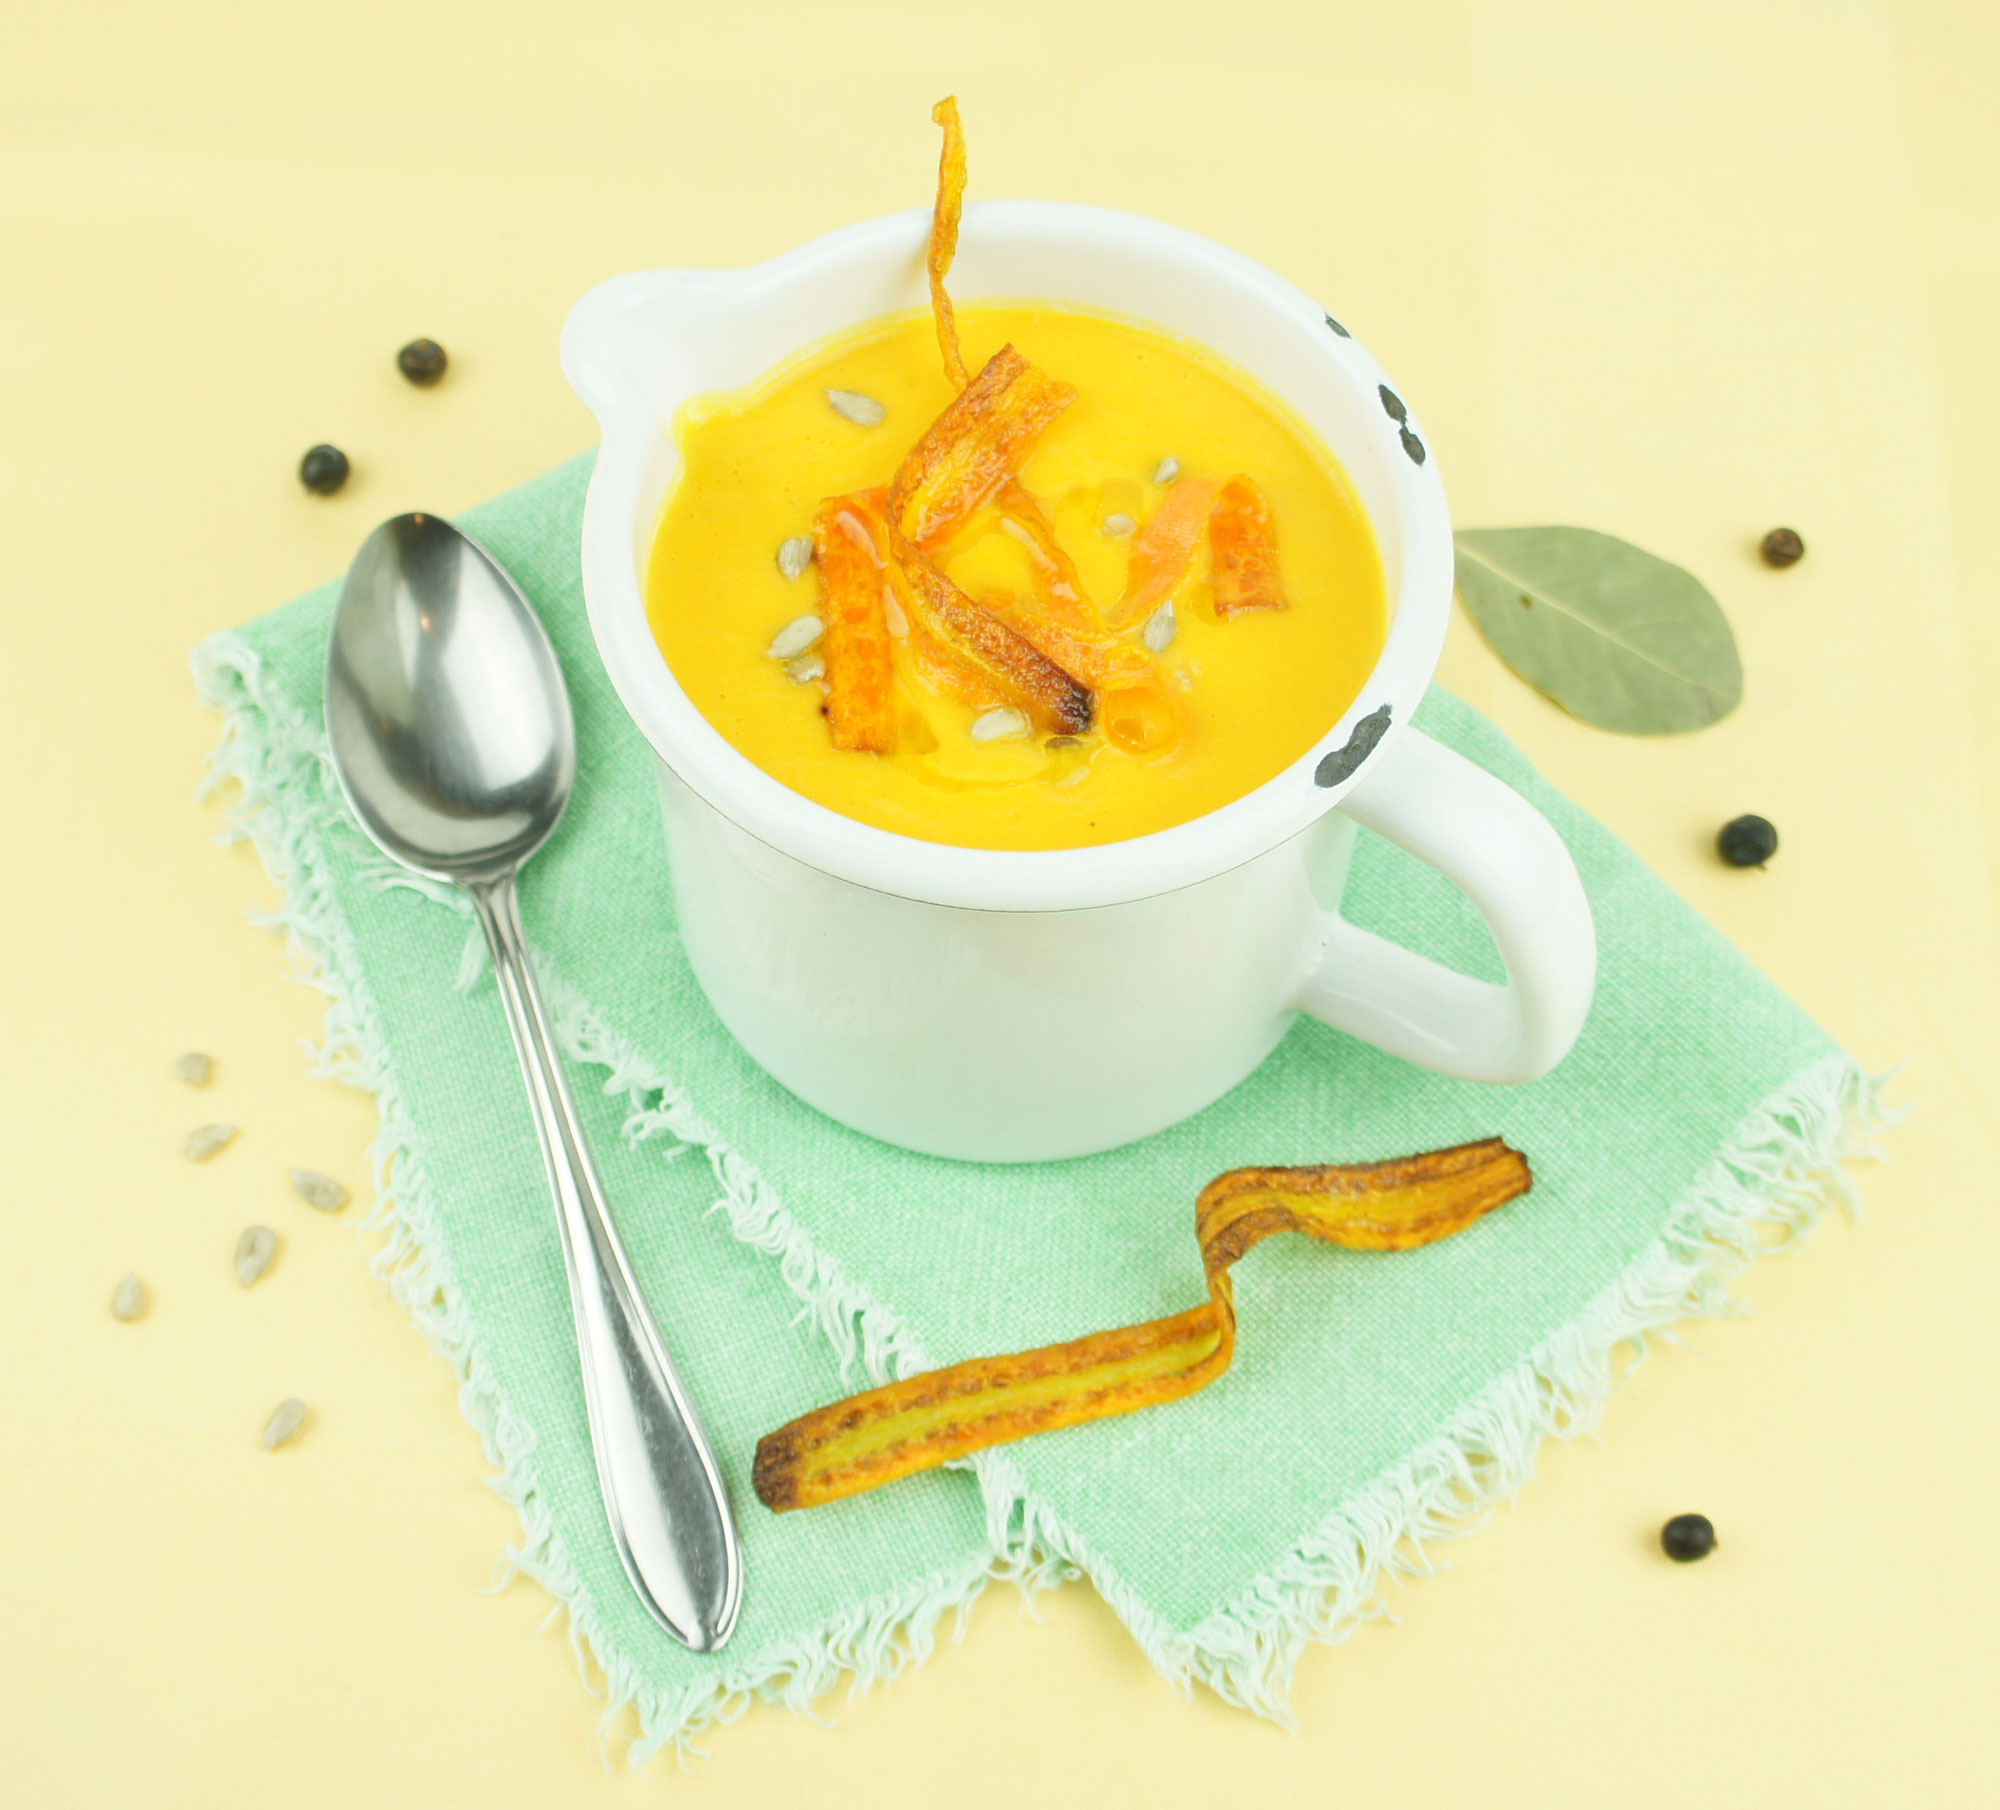 Karotten-Ingwer Suppe mit Karottenchips